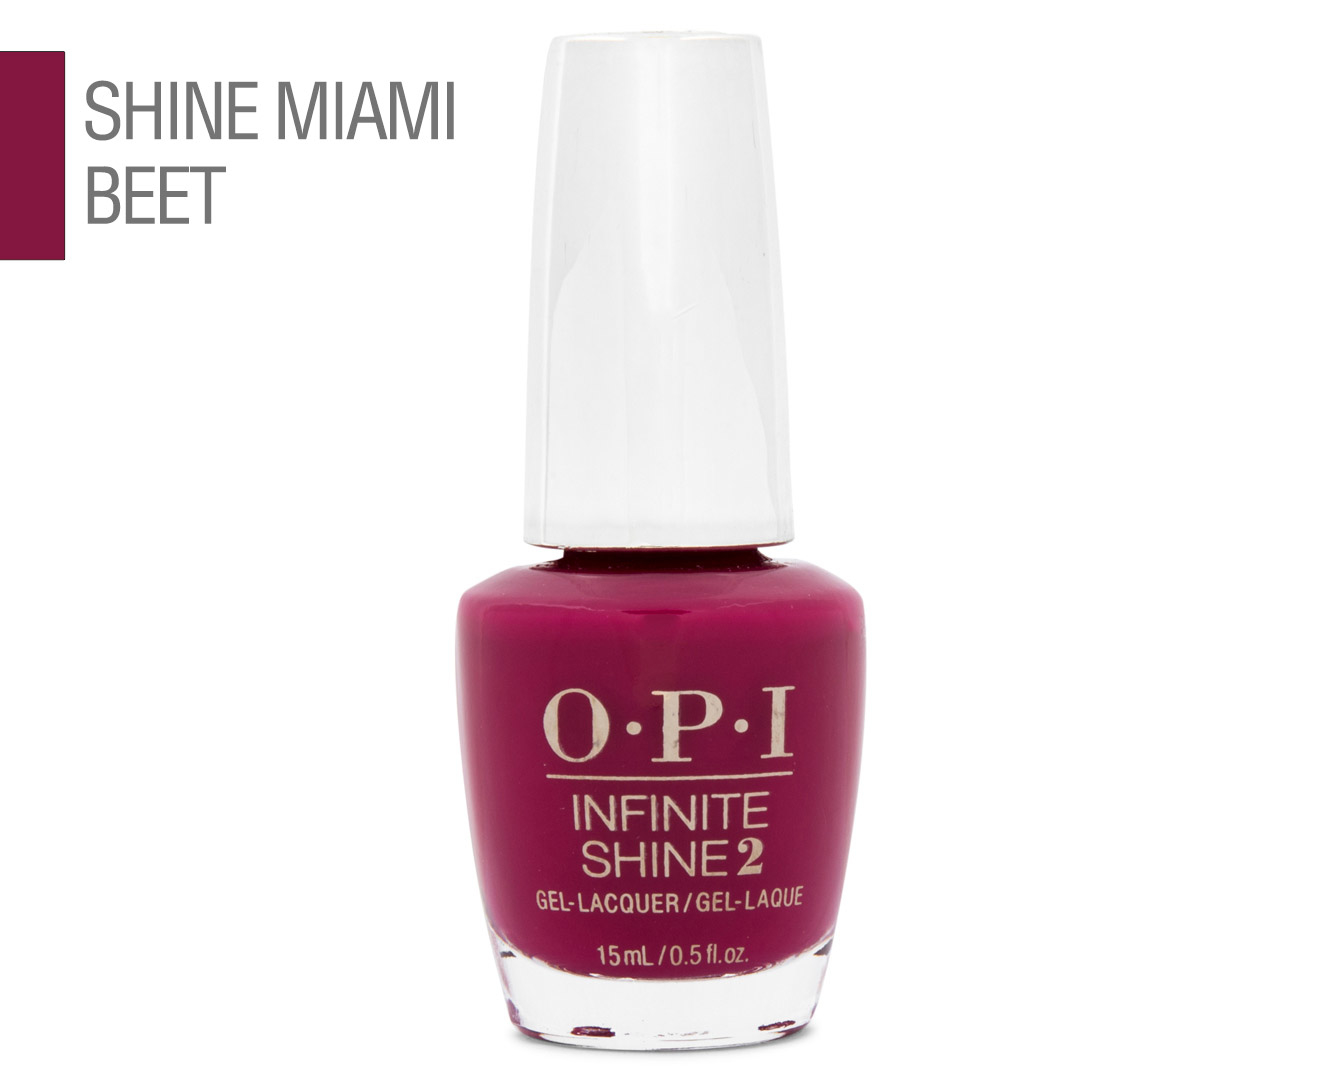 OPI Infinite Shine 2 Gel Nail Lacquer 15mL - Miami Beet 94100007571 ...